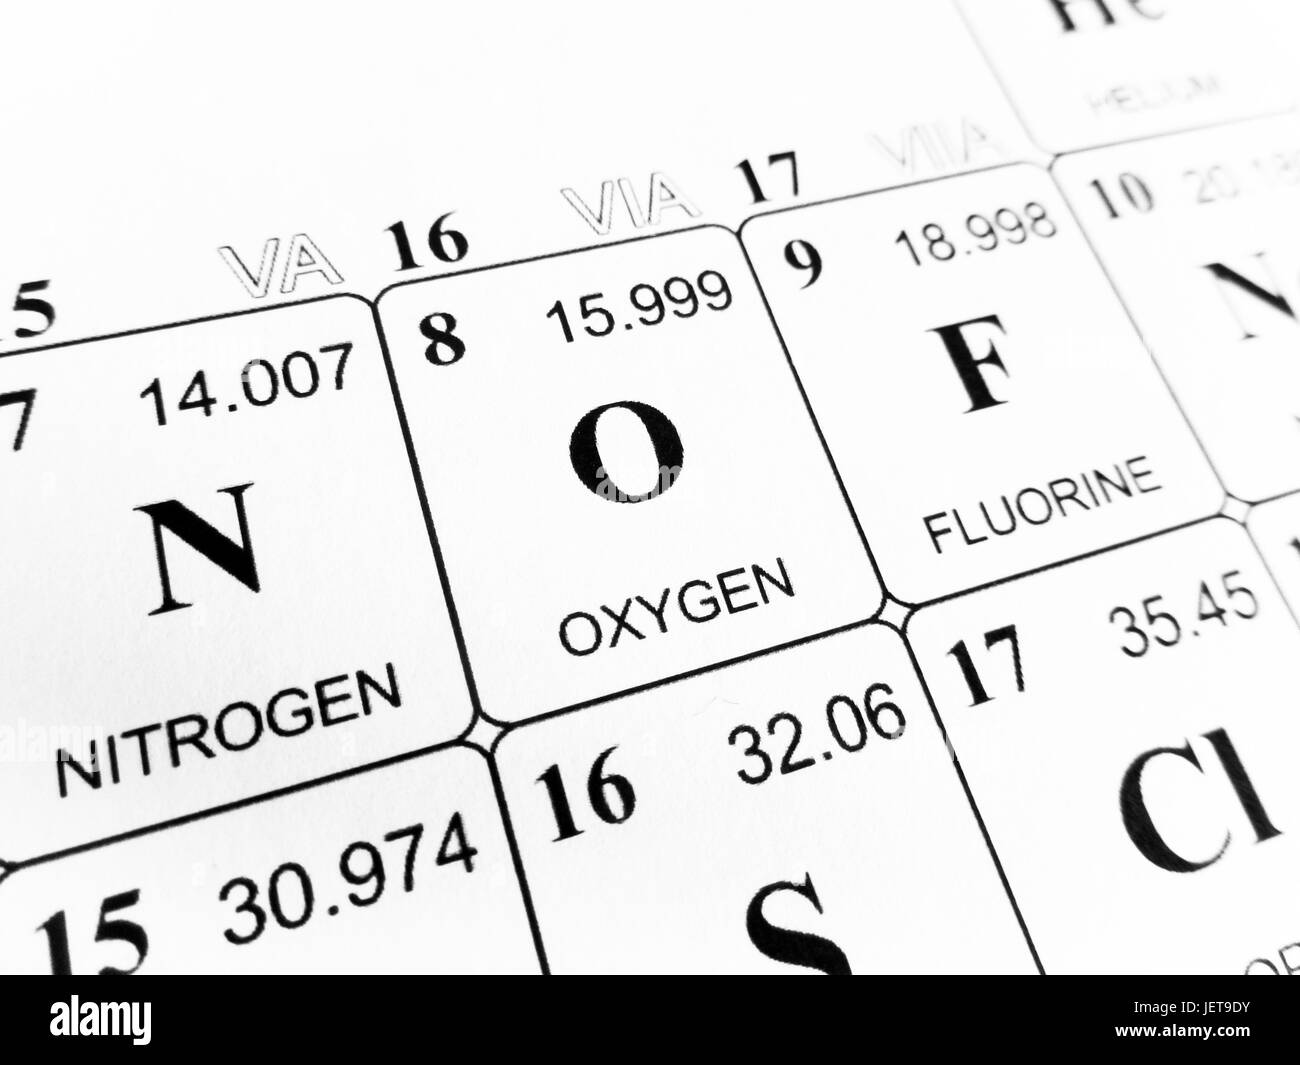 Periodic table of nitrogen images periodic table images periodic table of elements oxygen image collections periodic periodic table of elements fluorine images periodic table gamestrikefo Image collections